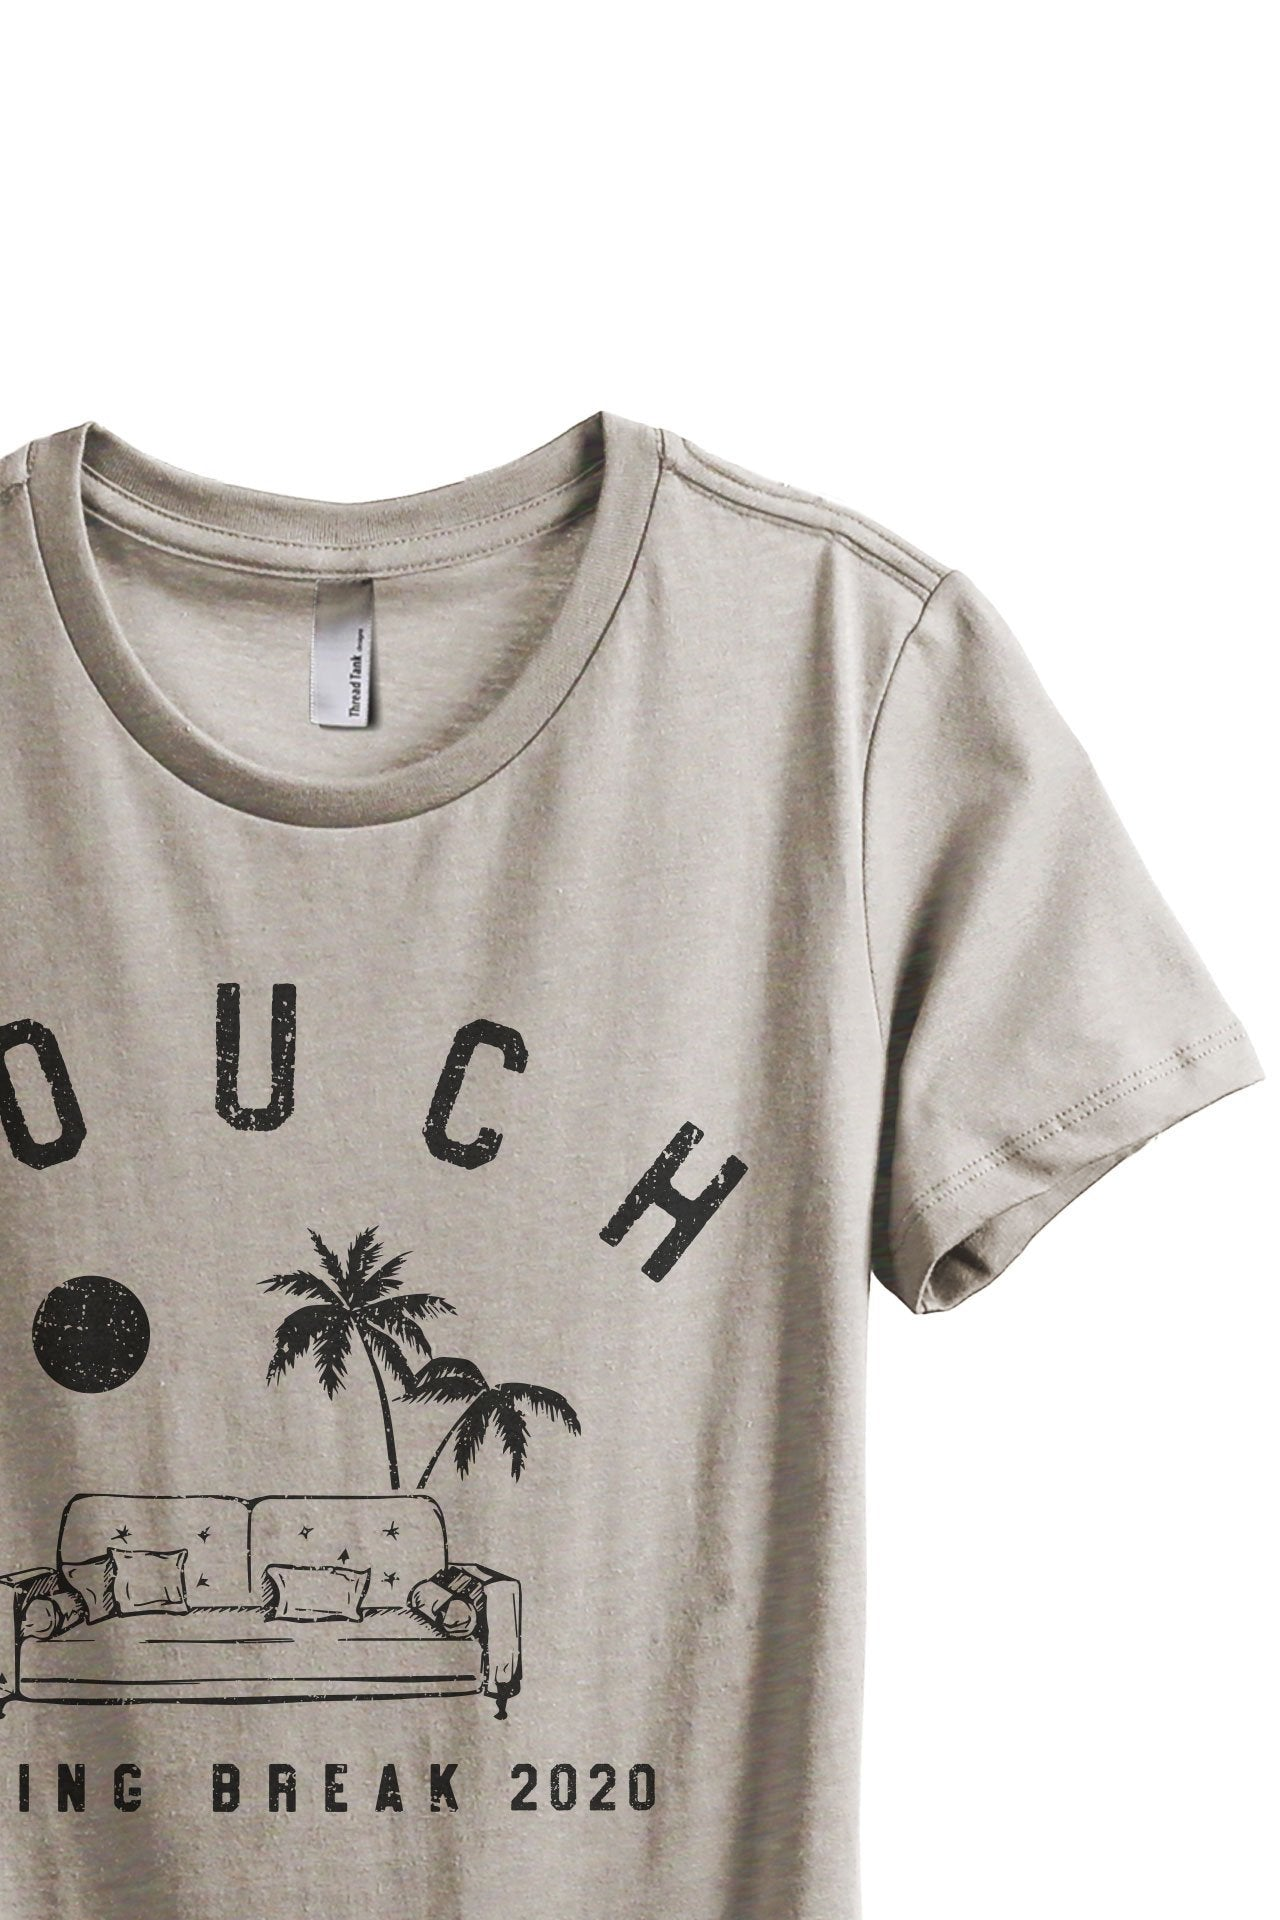 Couch Spring Break Women's Relaxed Crewneck T-Shirt Top Tee Charcoal Grey